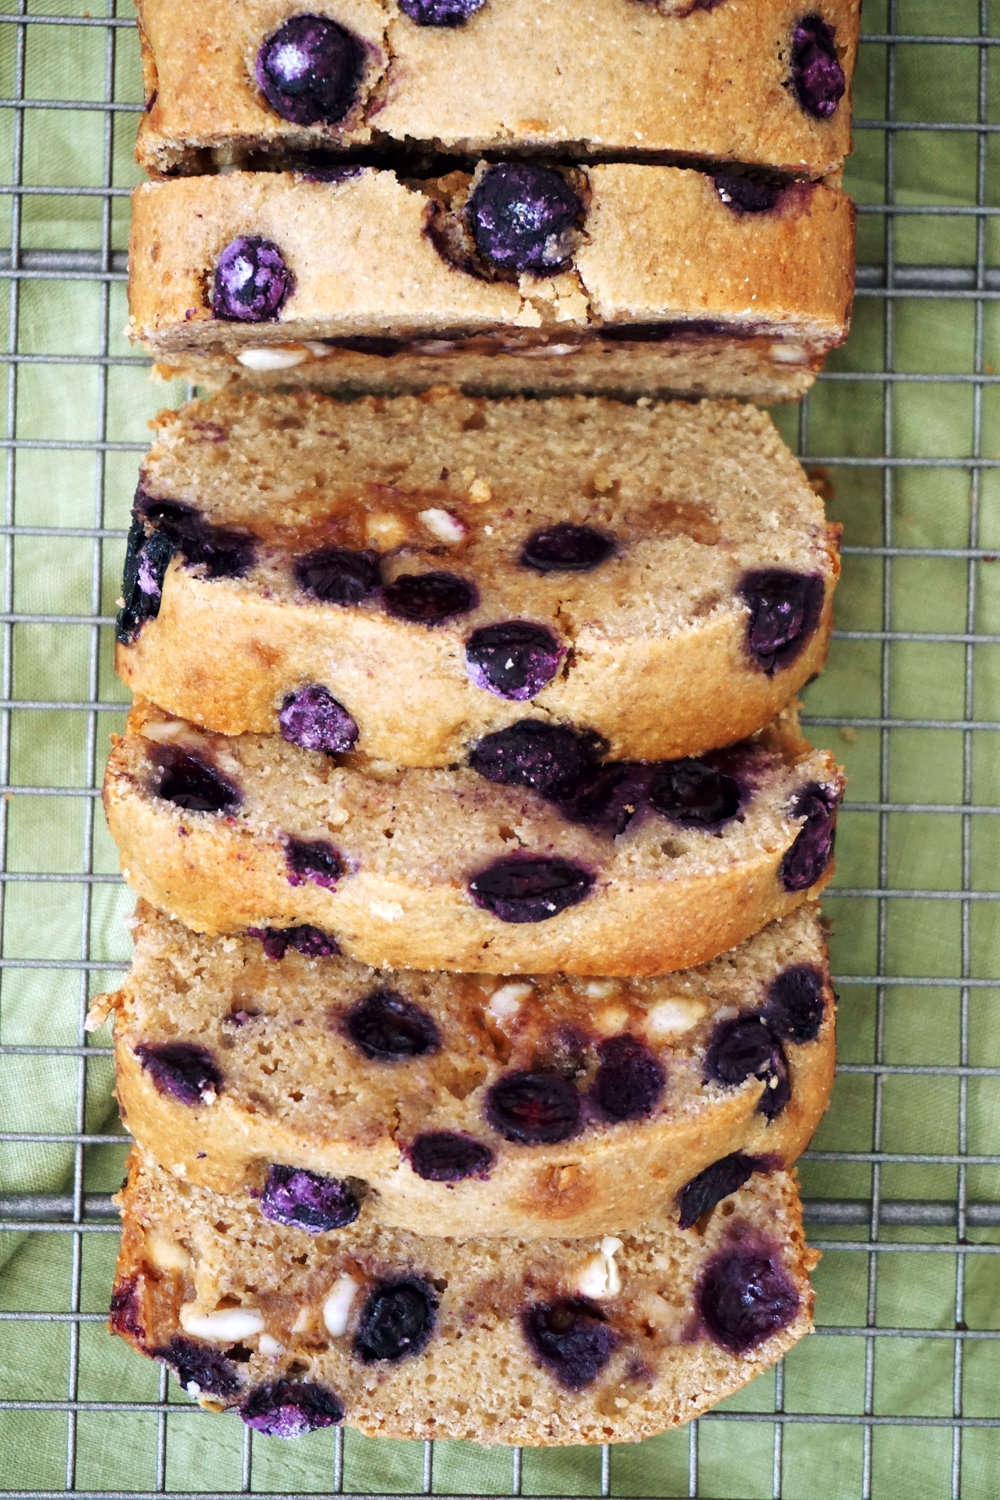 Blueberry Cashew Crumble Bread